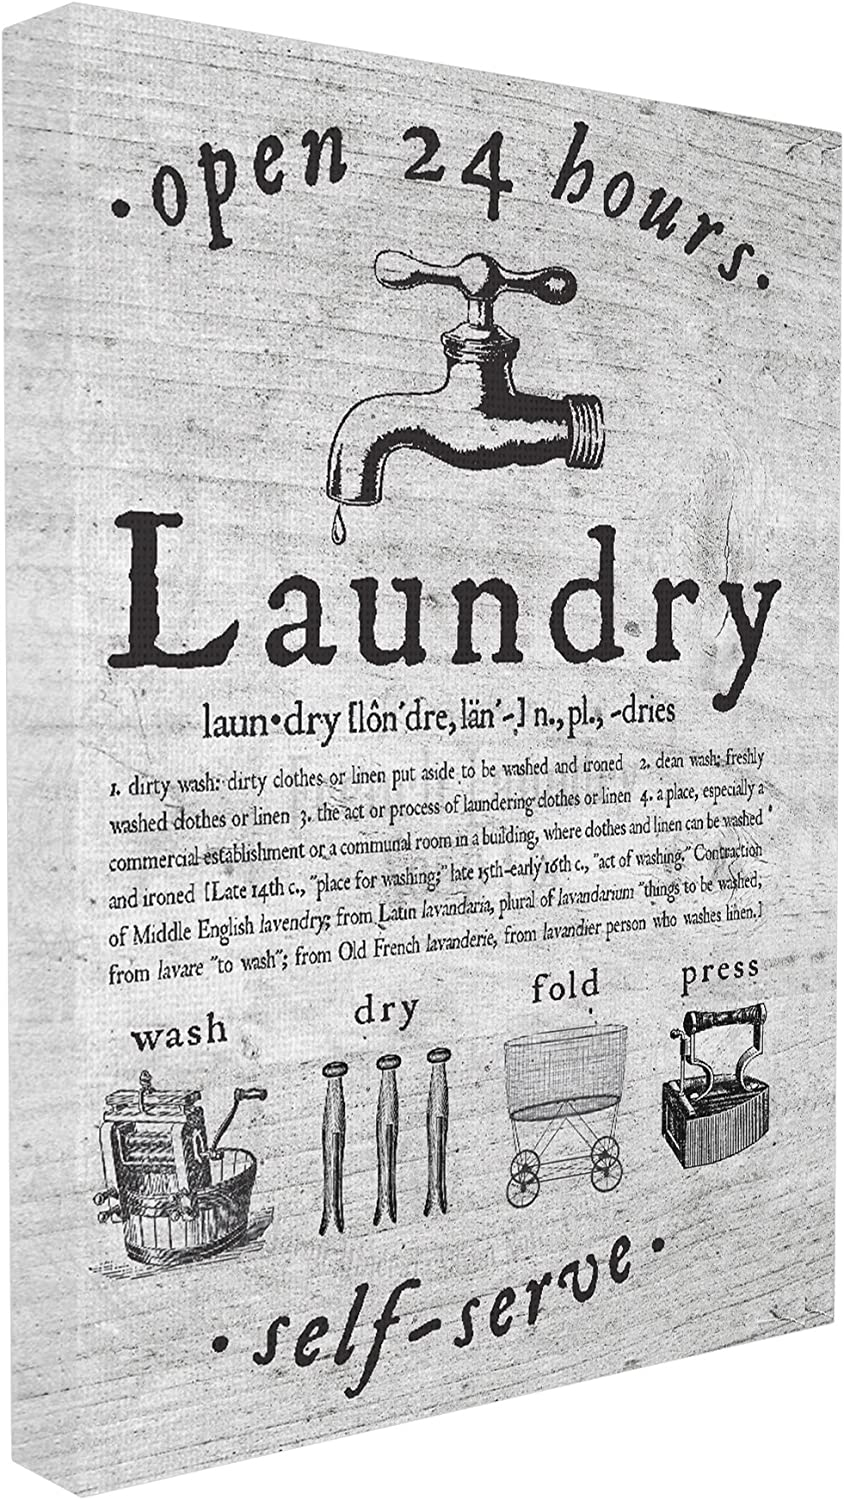 Stupell Home Décor Everything Laundry Vintage Stretched Canvas Wall Art, 16 x 1.5 x 20, Proudly Made in USA